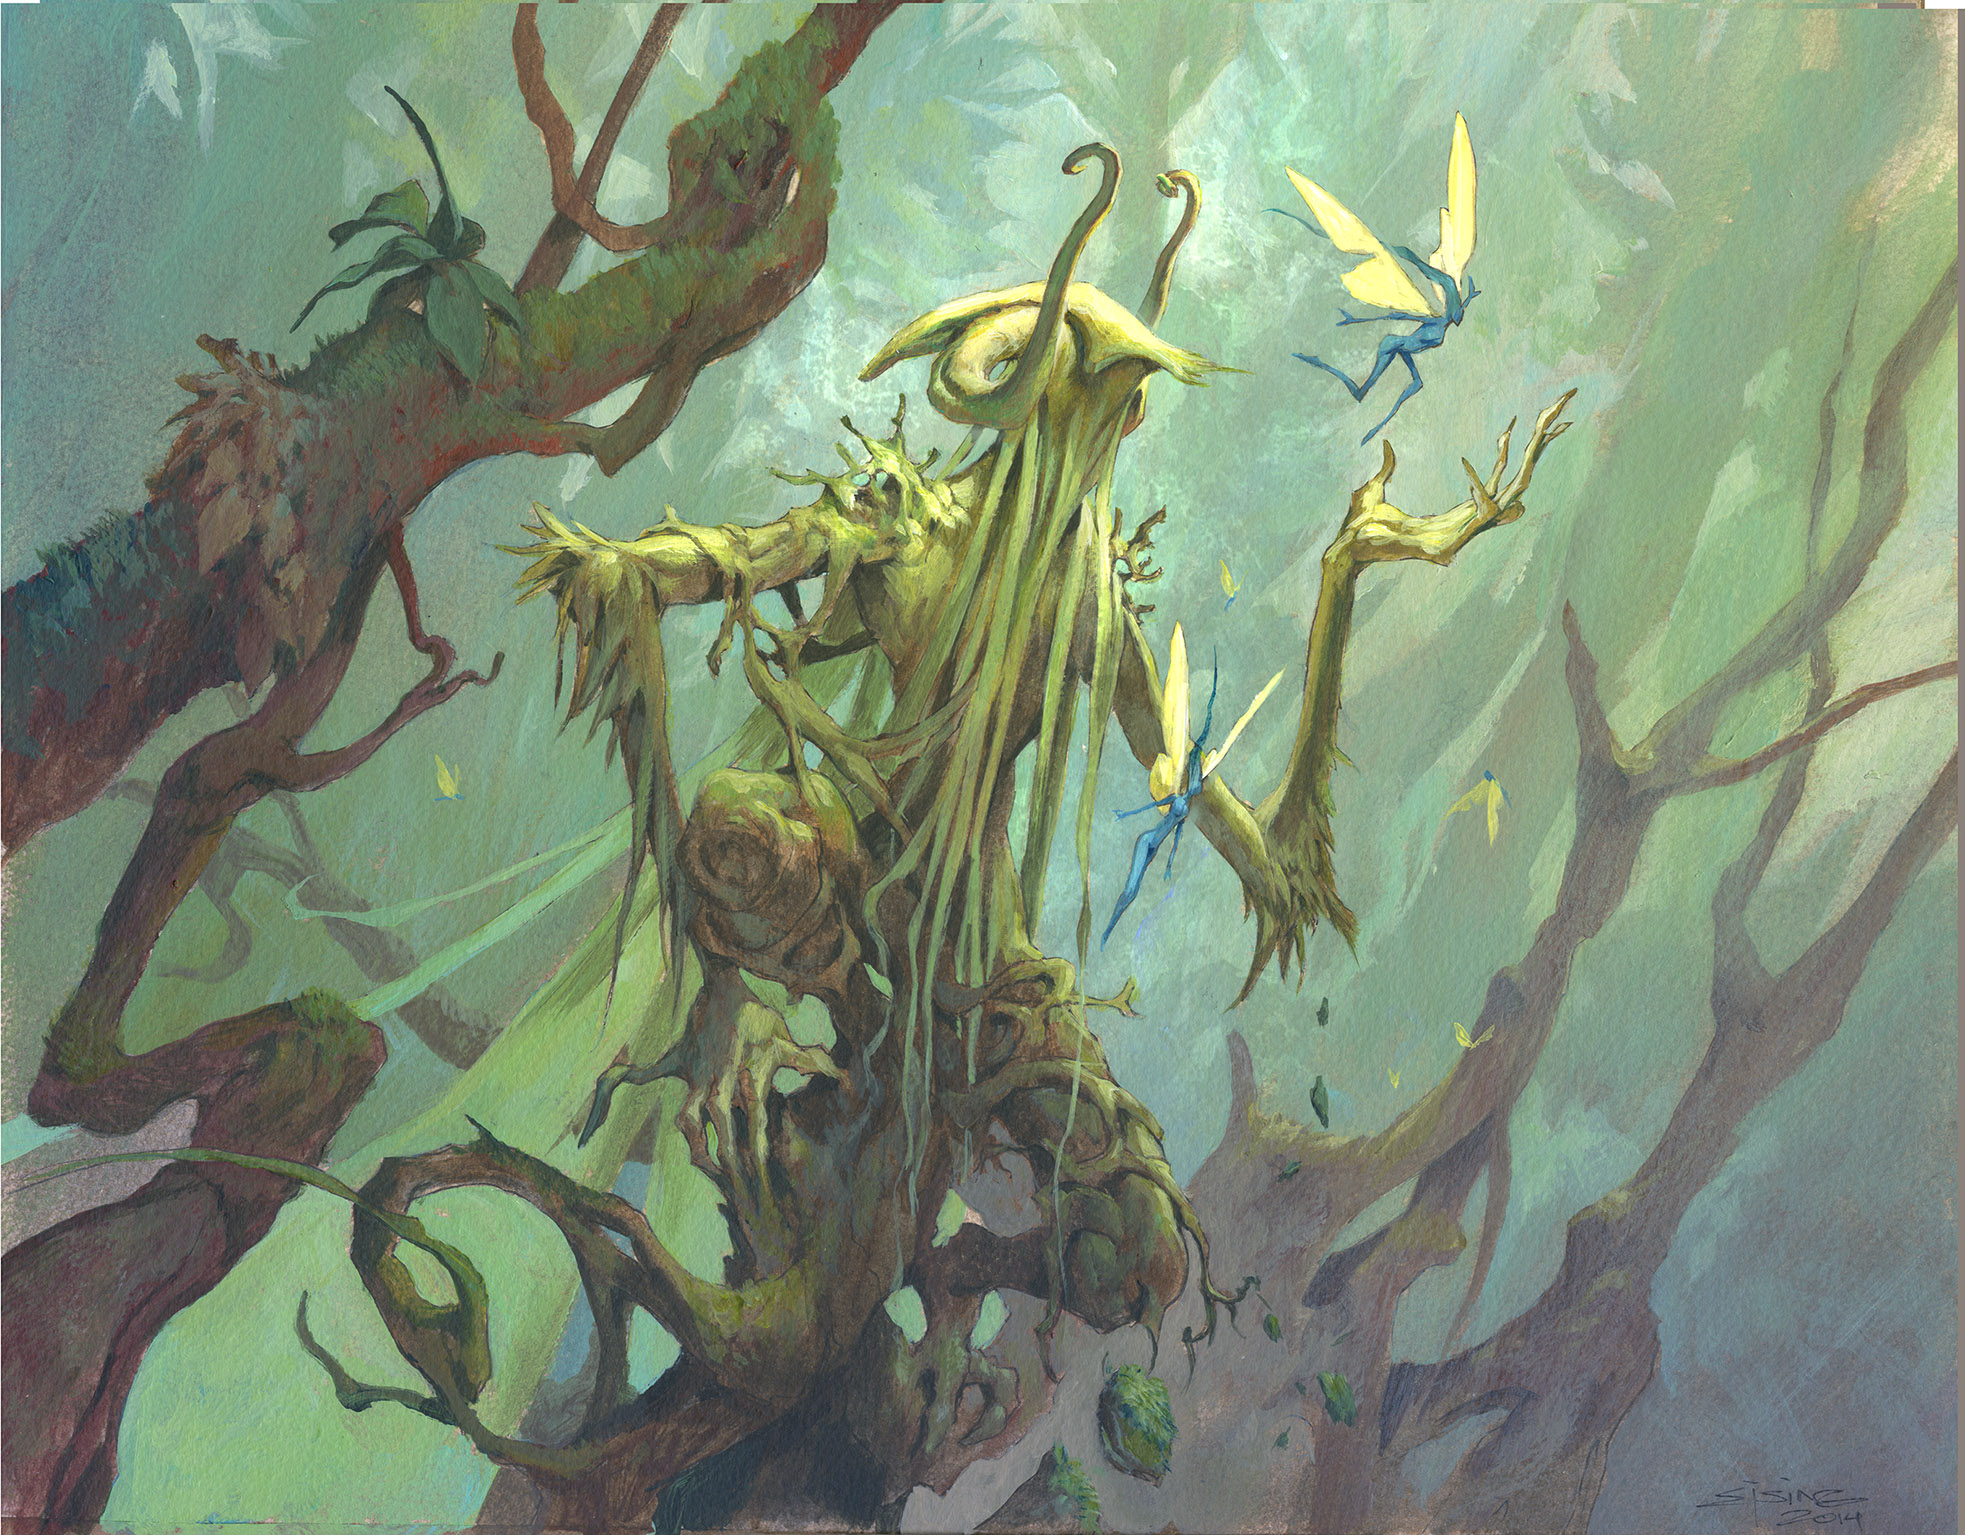 art id 160175 Protector of the Trees final.jpg